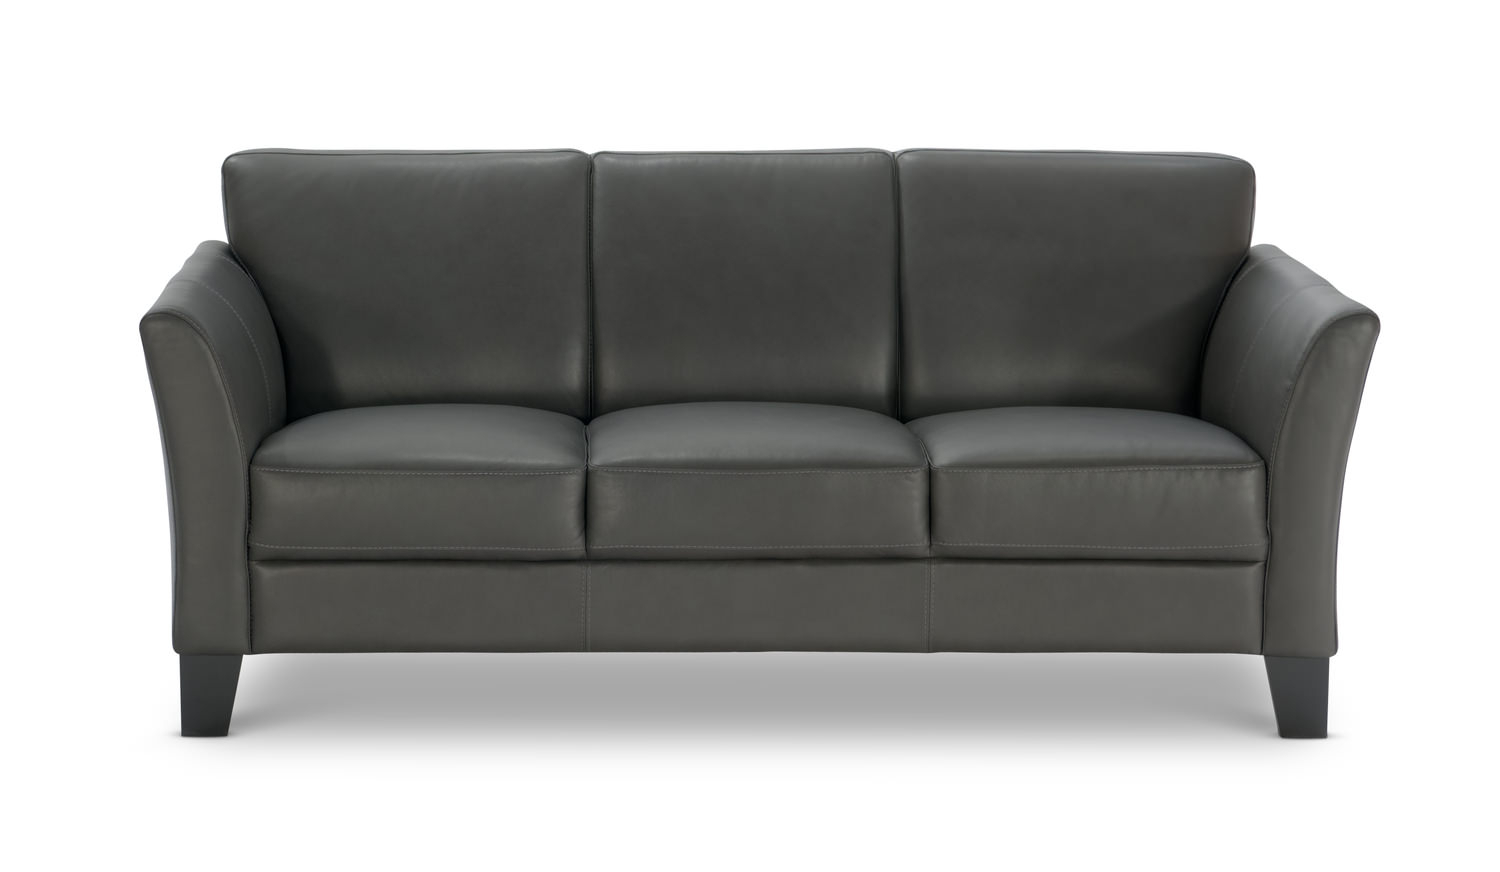 Living Room Furniture – Sofas & Couches – Hom Furniture With Regard To Harper Down Oversized Sofa Chairs (Image 9 of 20)